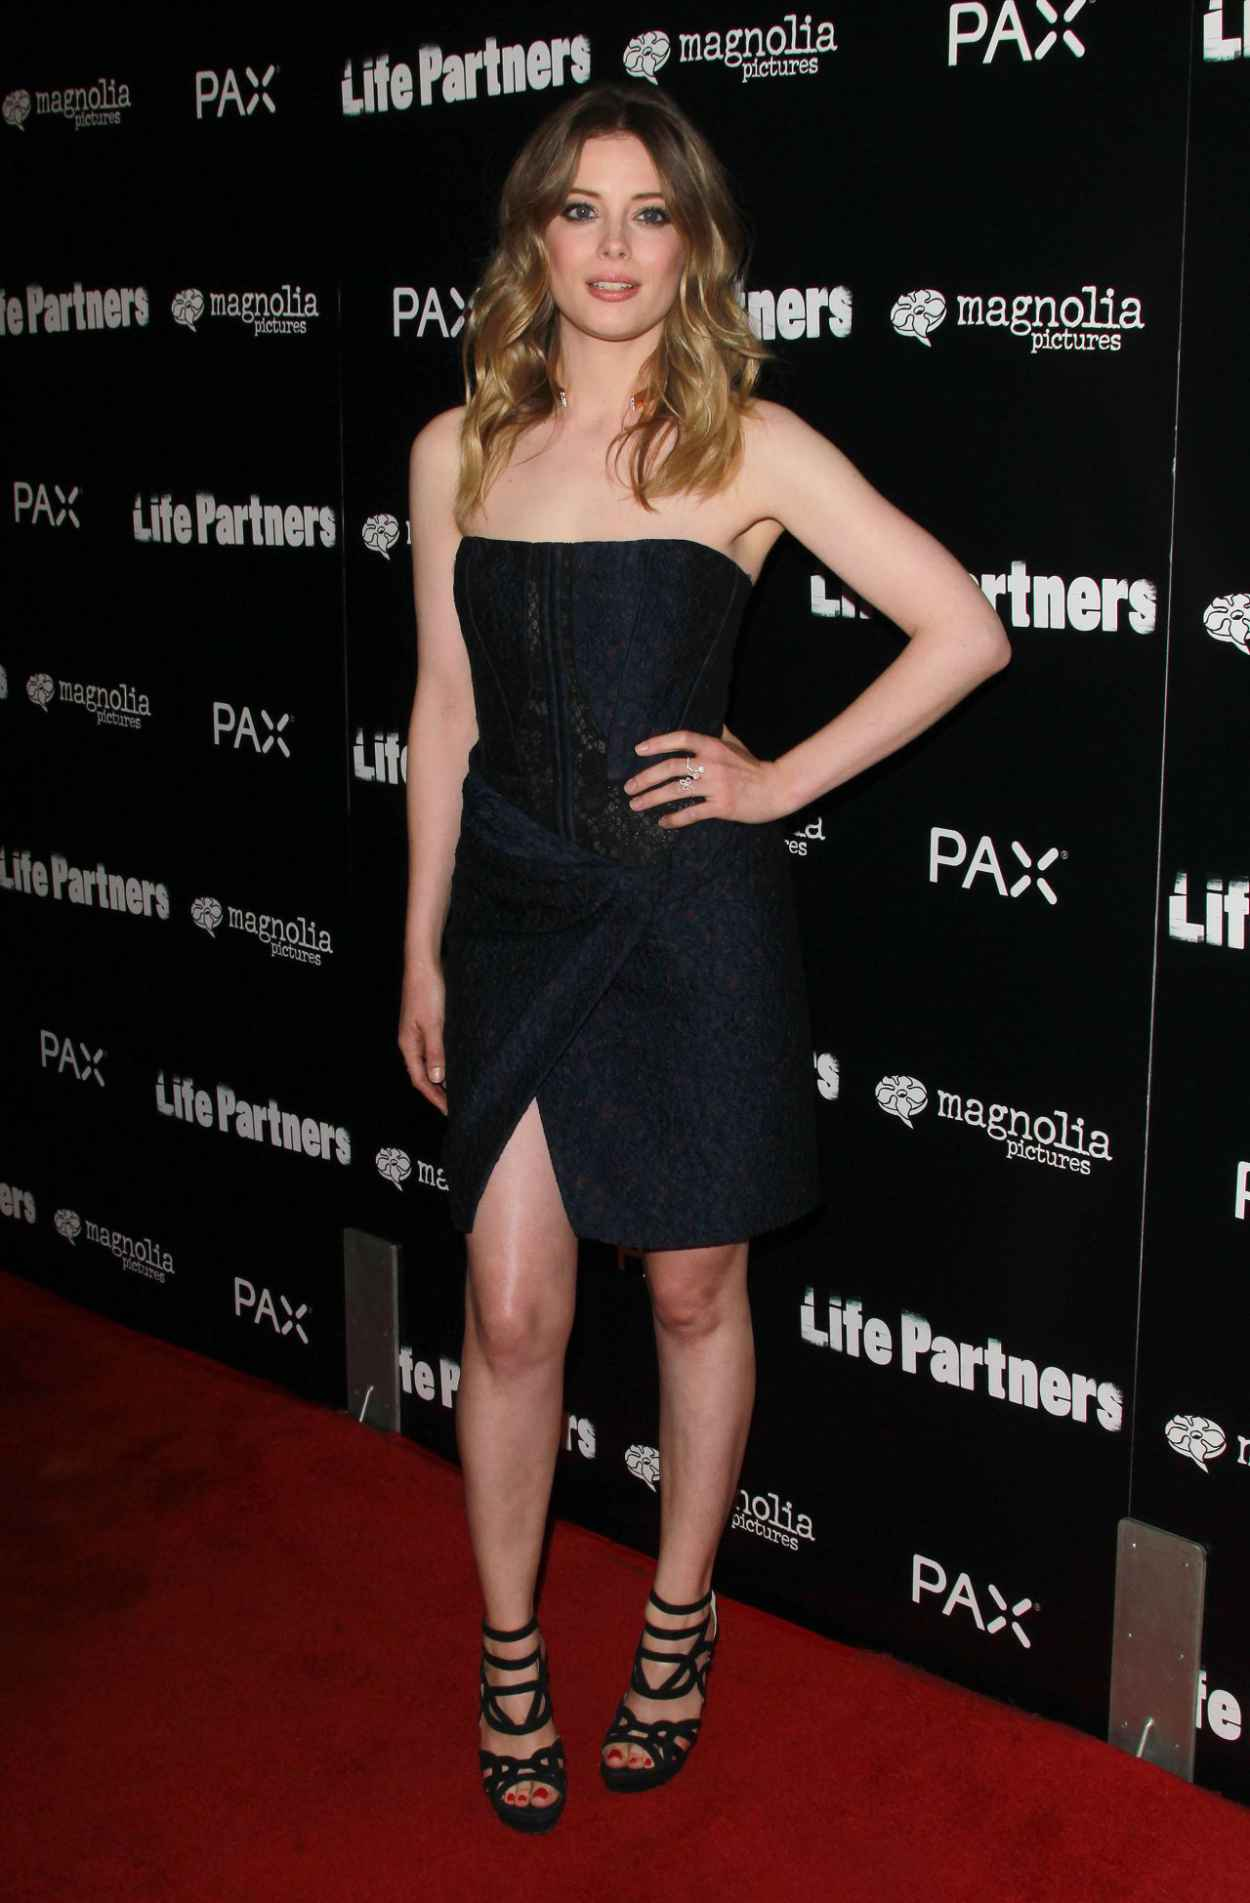 gillian jacobs who dated who